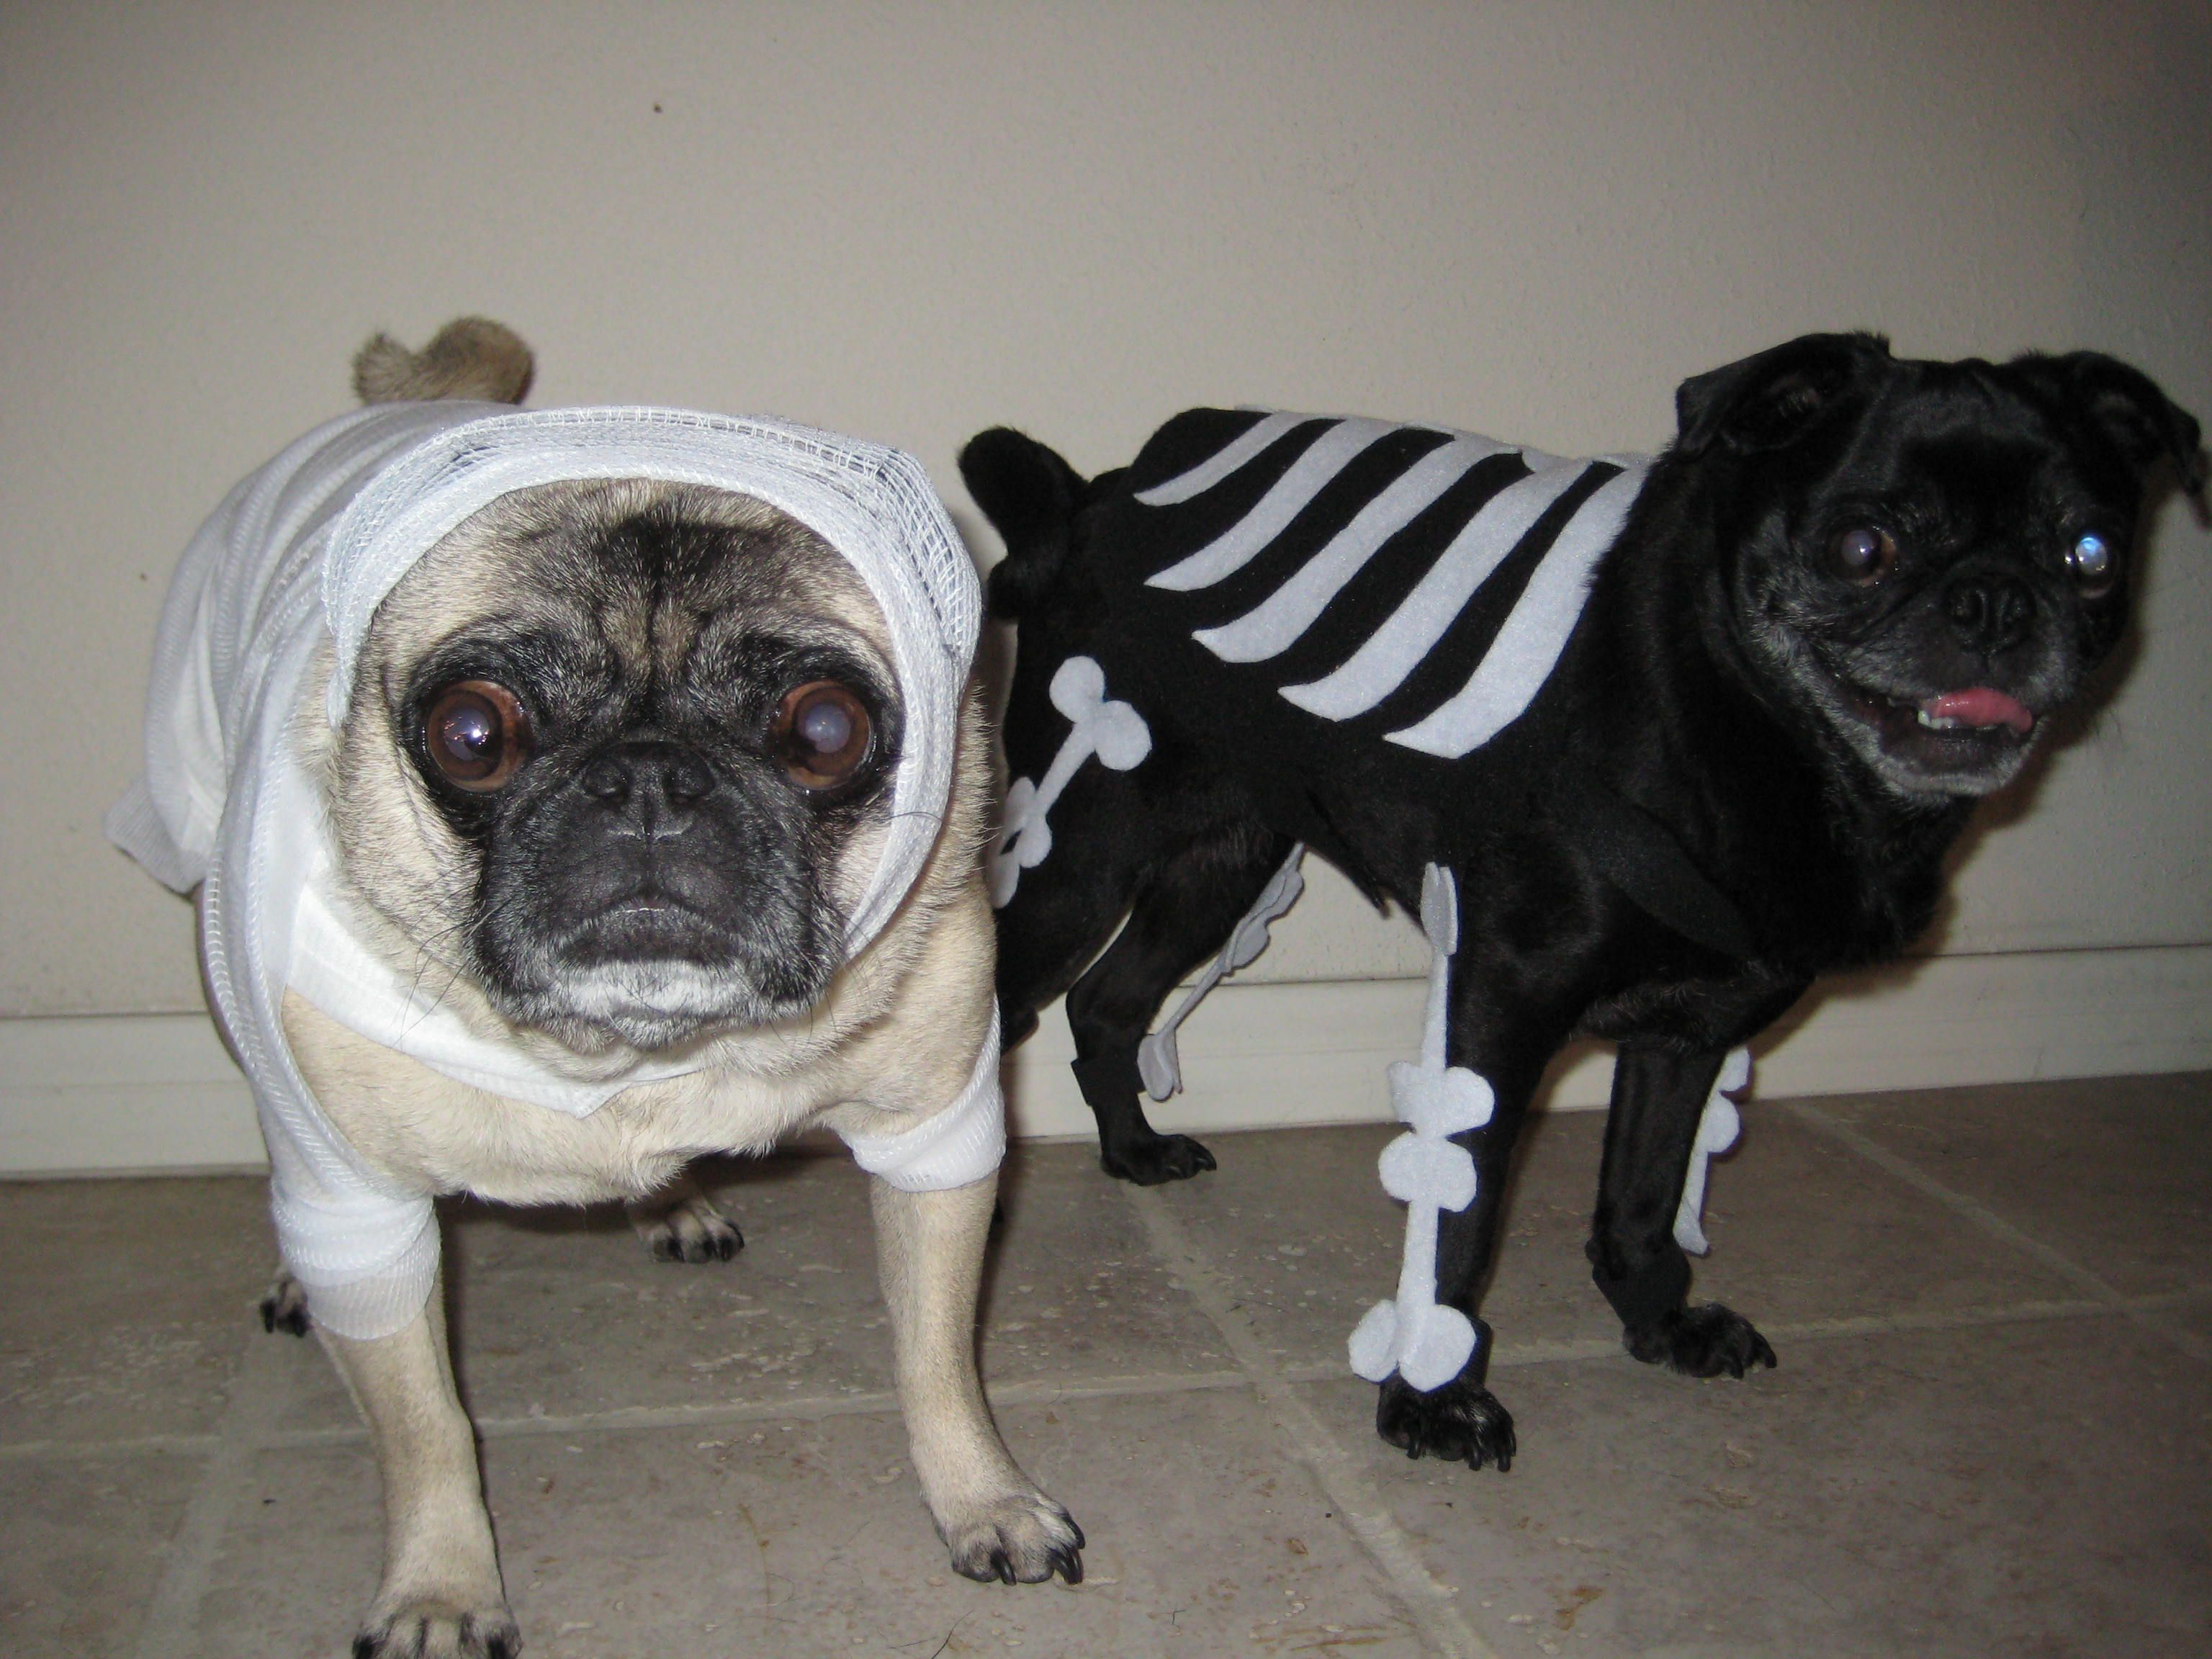 Scary Pugs Mummy & Skeleton Halloween 2009 Halloween